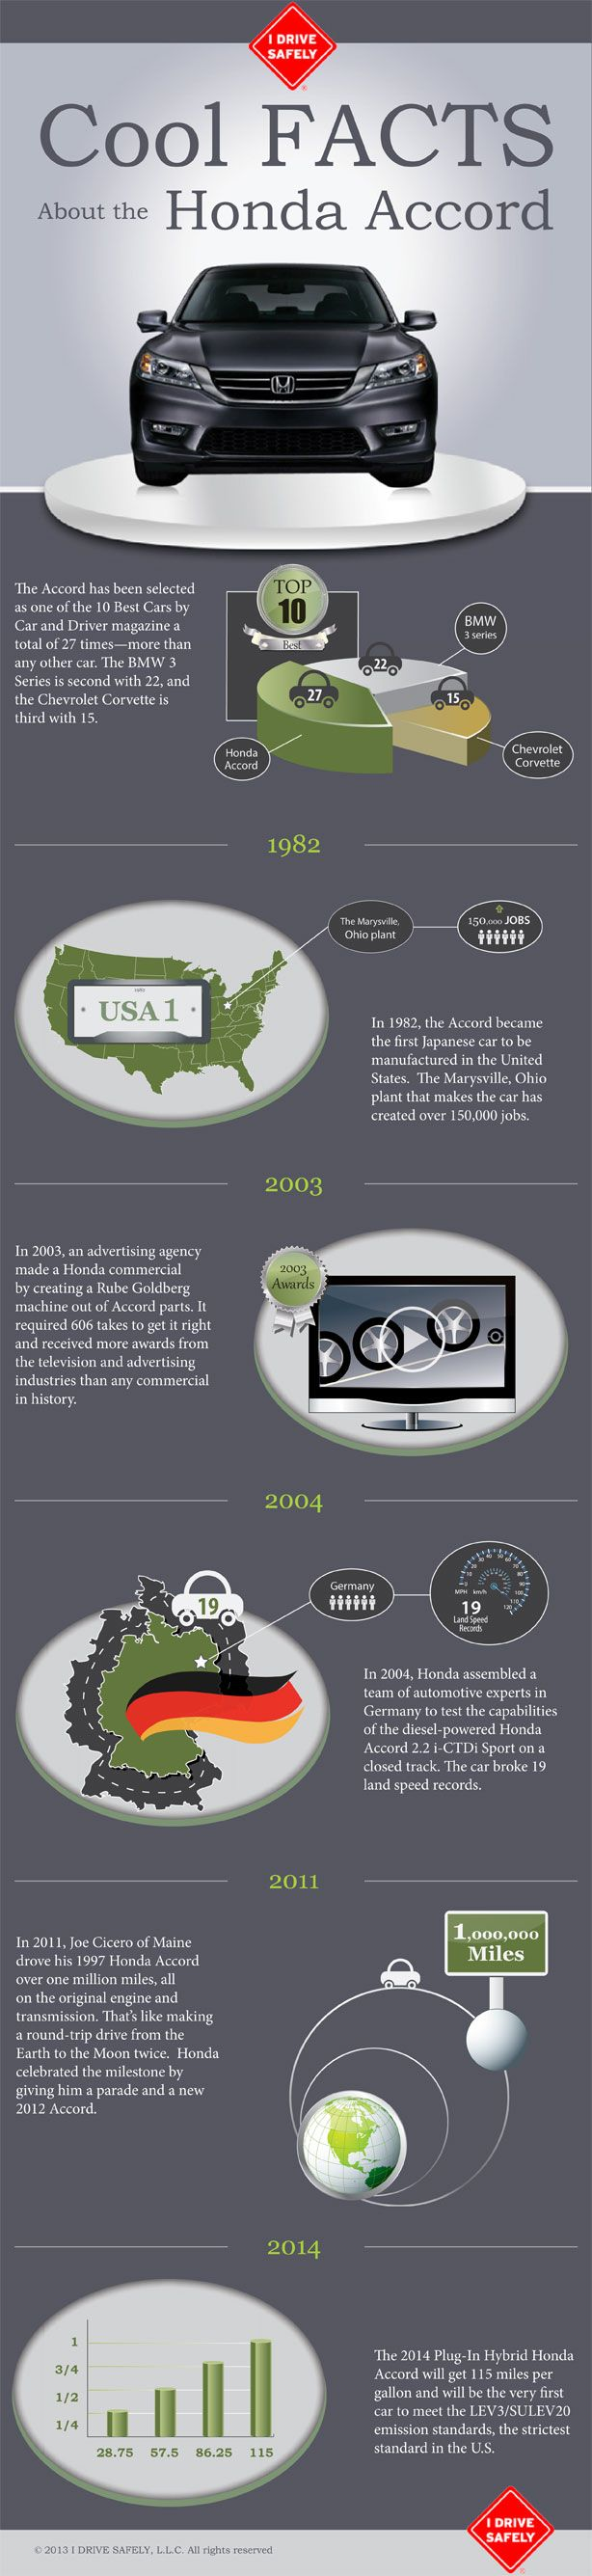 Honda Accord Facts - iNFOGRAPHiCs MANiA